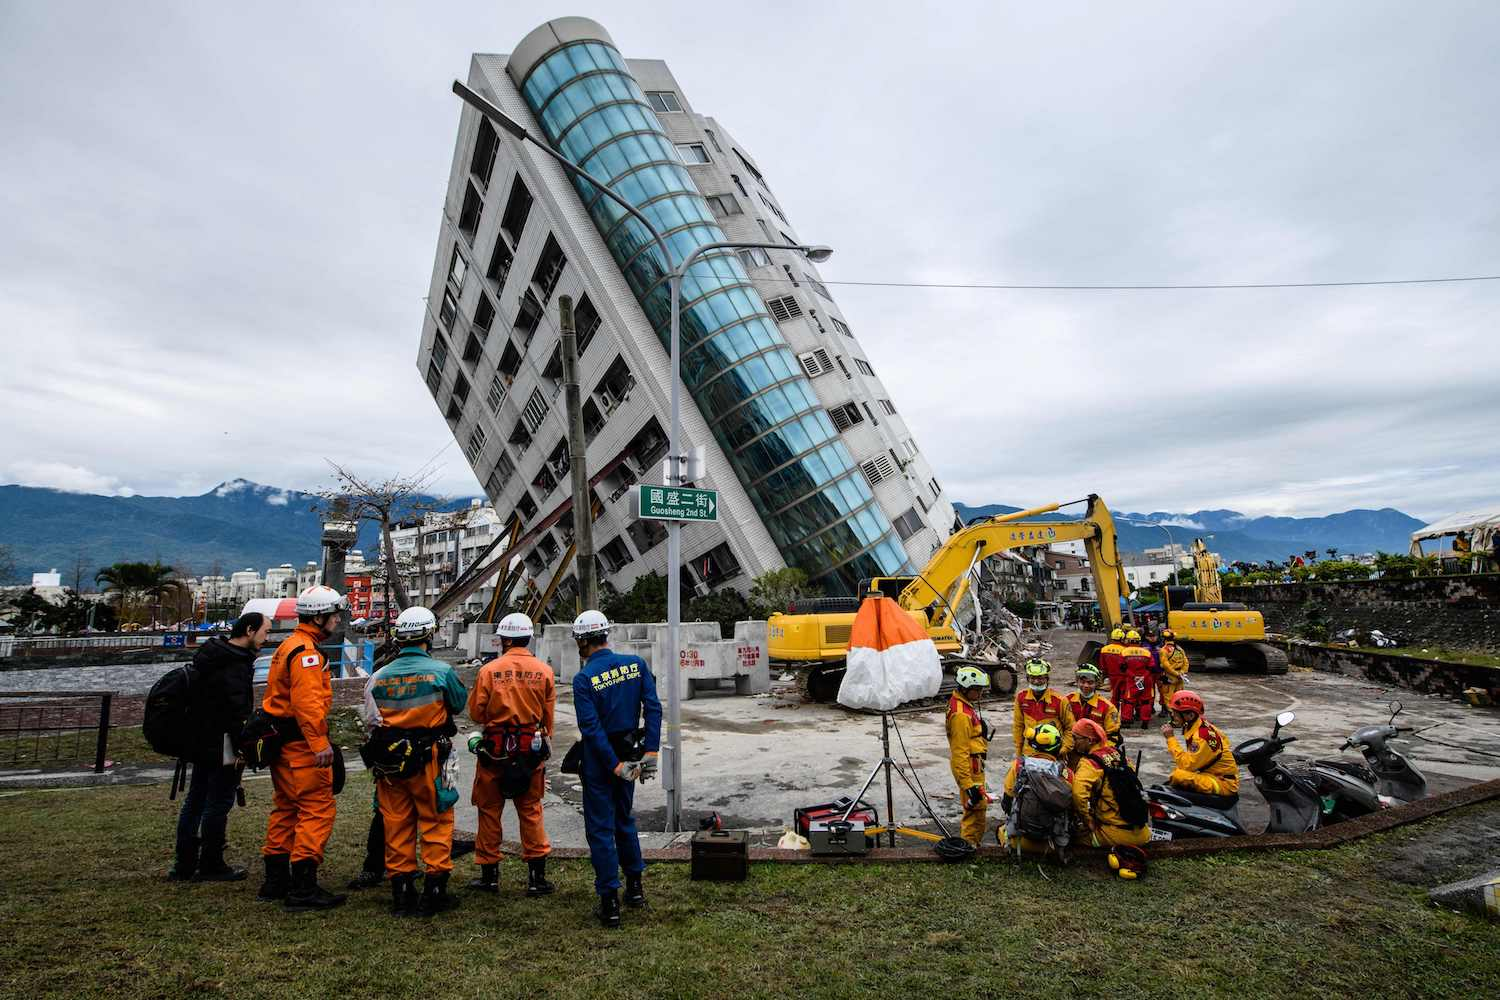 Japanese (left) and Taiwanese rescue workers (right) look at the Yun Tsui building (center), which is leaning at a precarious angle, in the Taiwanese city of Hualien on Feb. 9, after the city was hit by a 6.4-magnitude quake late on Feb. 6. (Photo credit should read ANTHONY WALLACE/AFP/Getty Images)